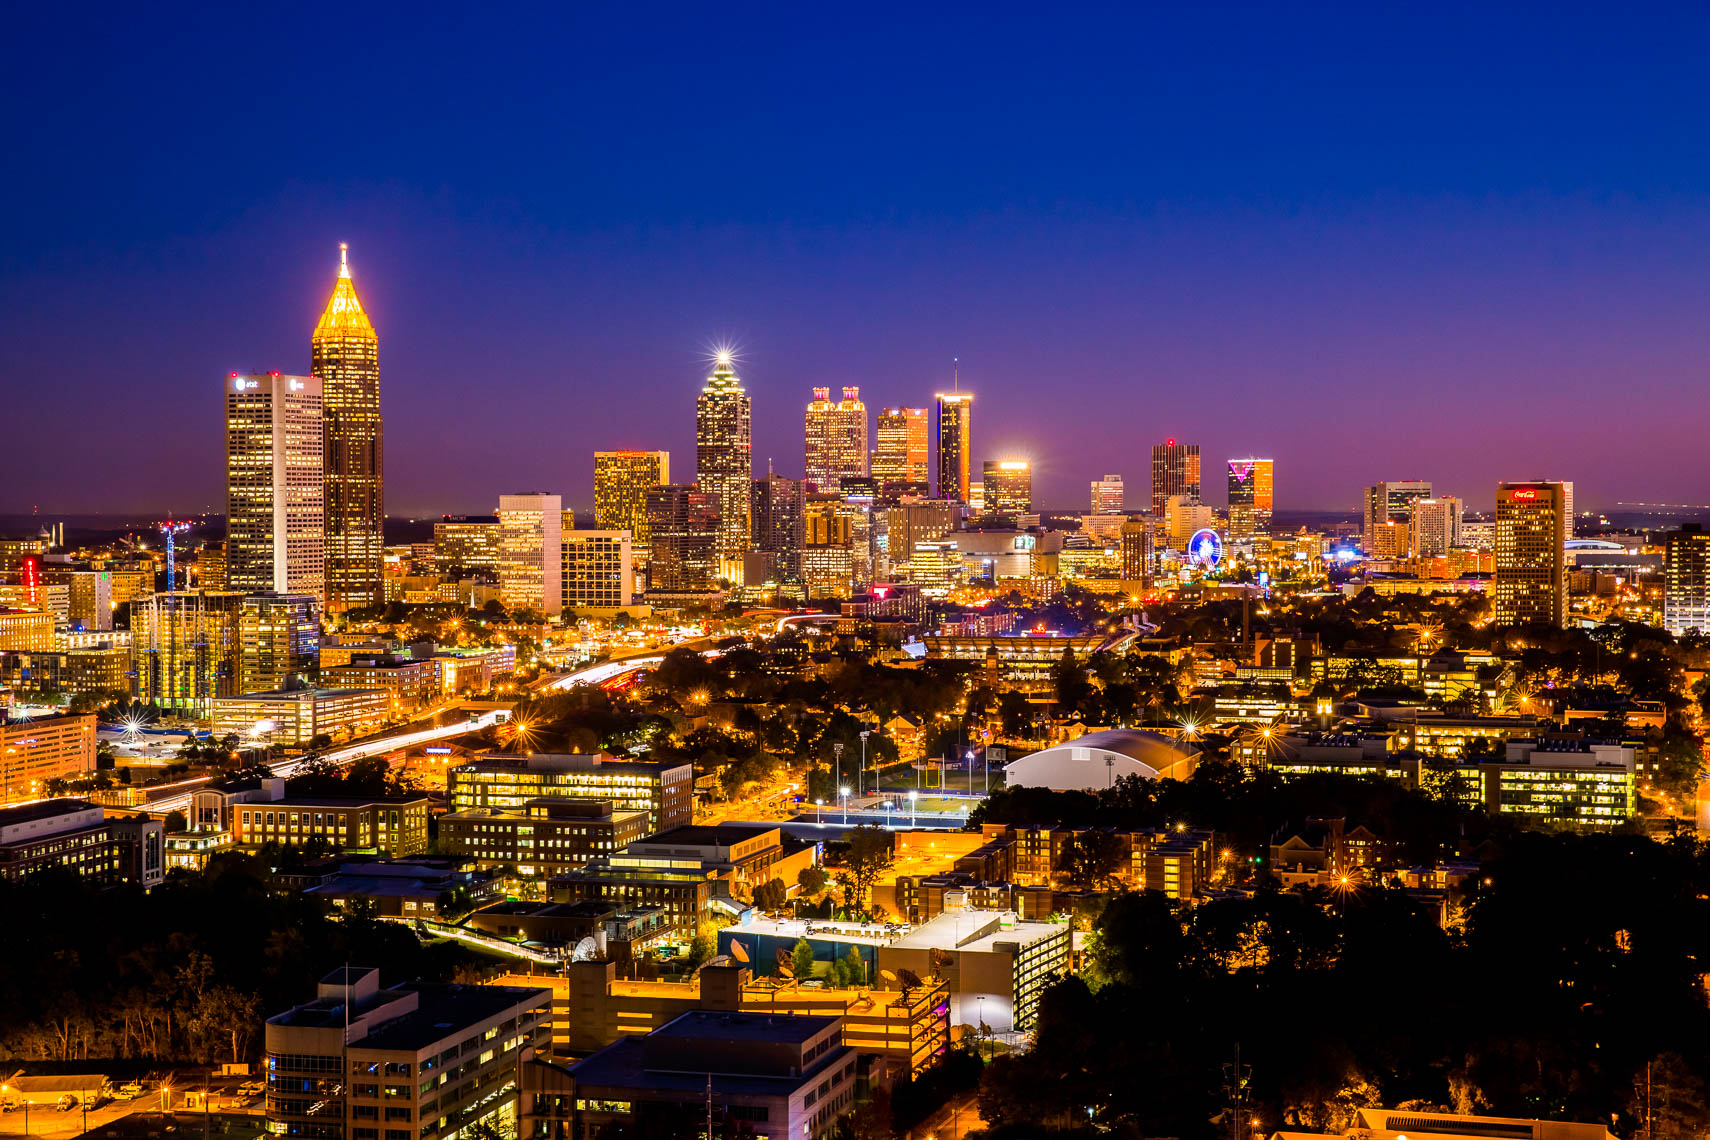 Skyline of Atlanta Buildings at Night